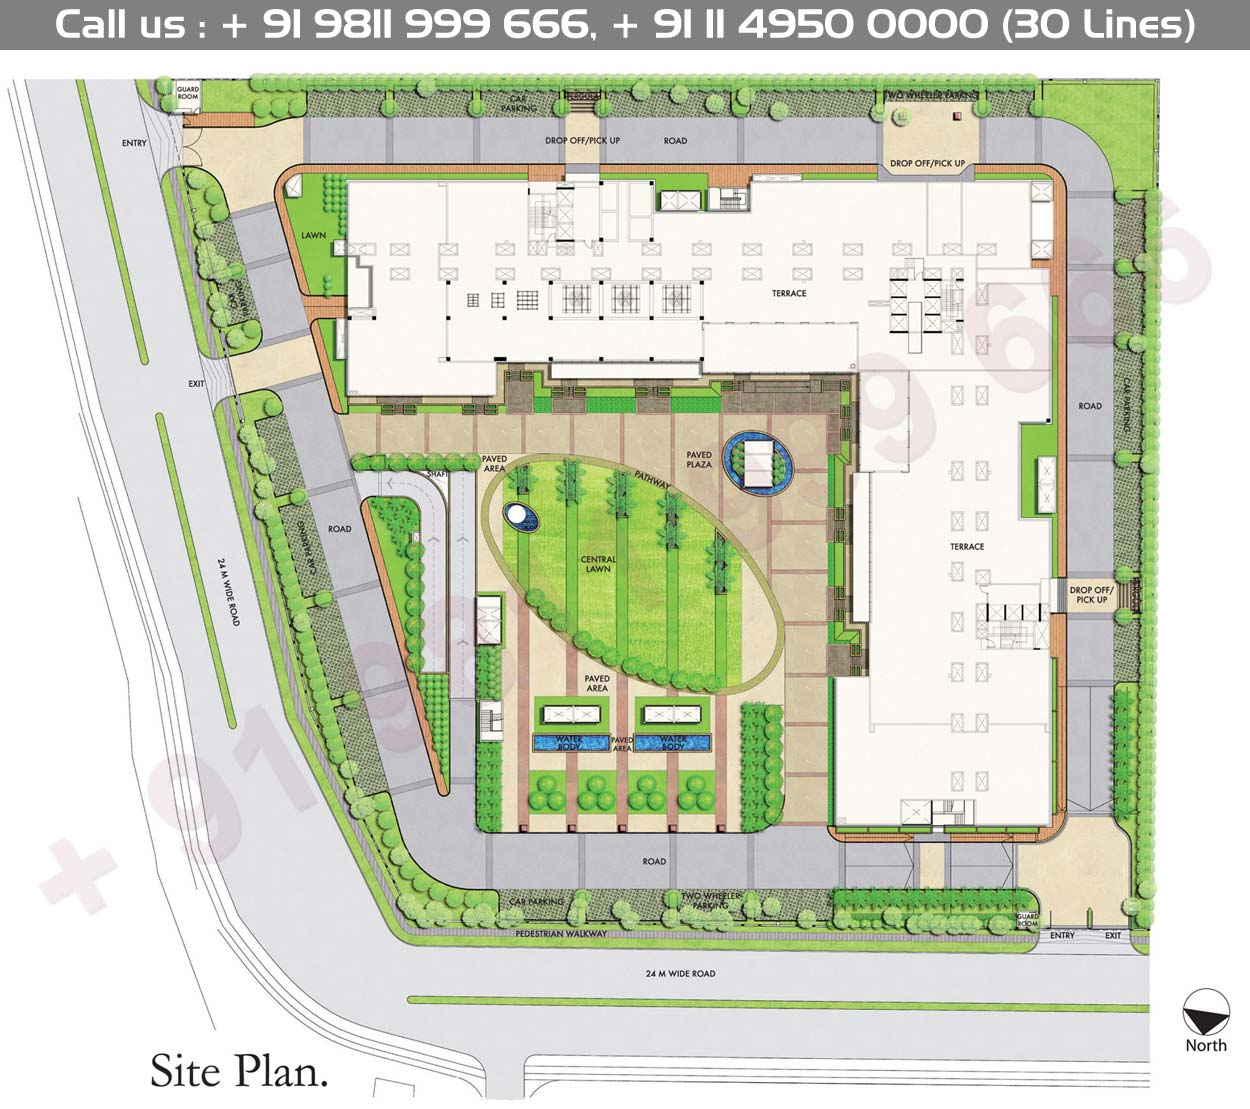 DLF Prime Tower Phase I Site Map